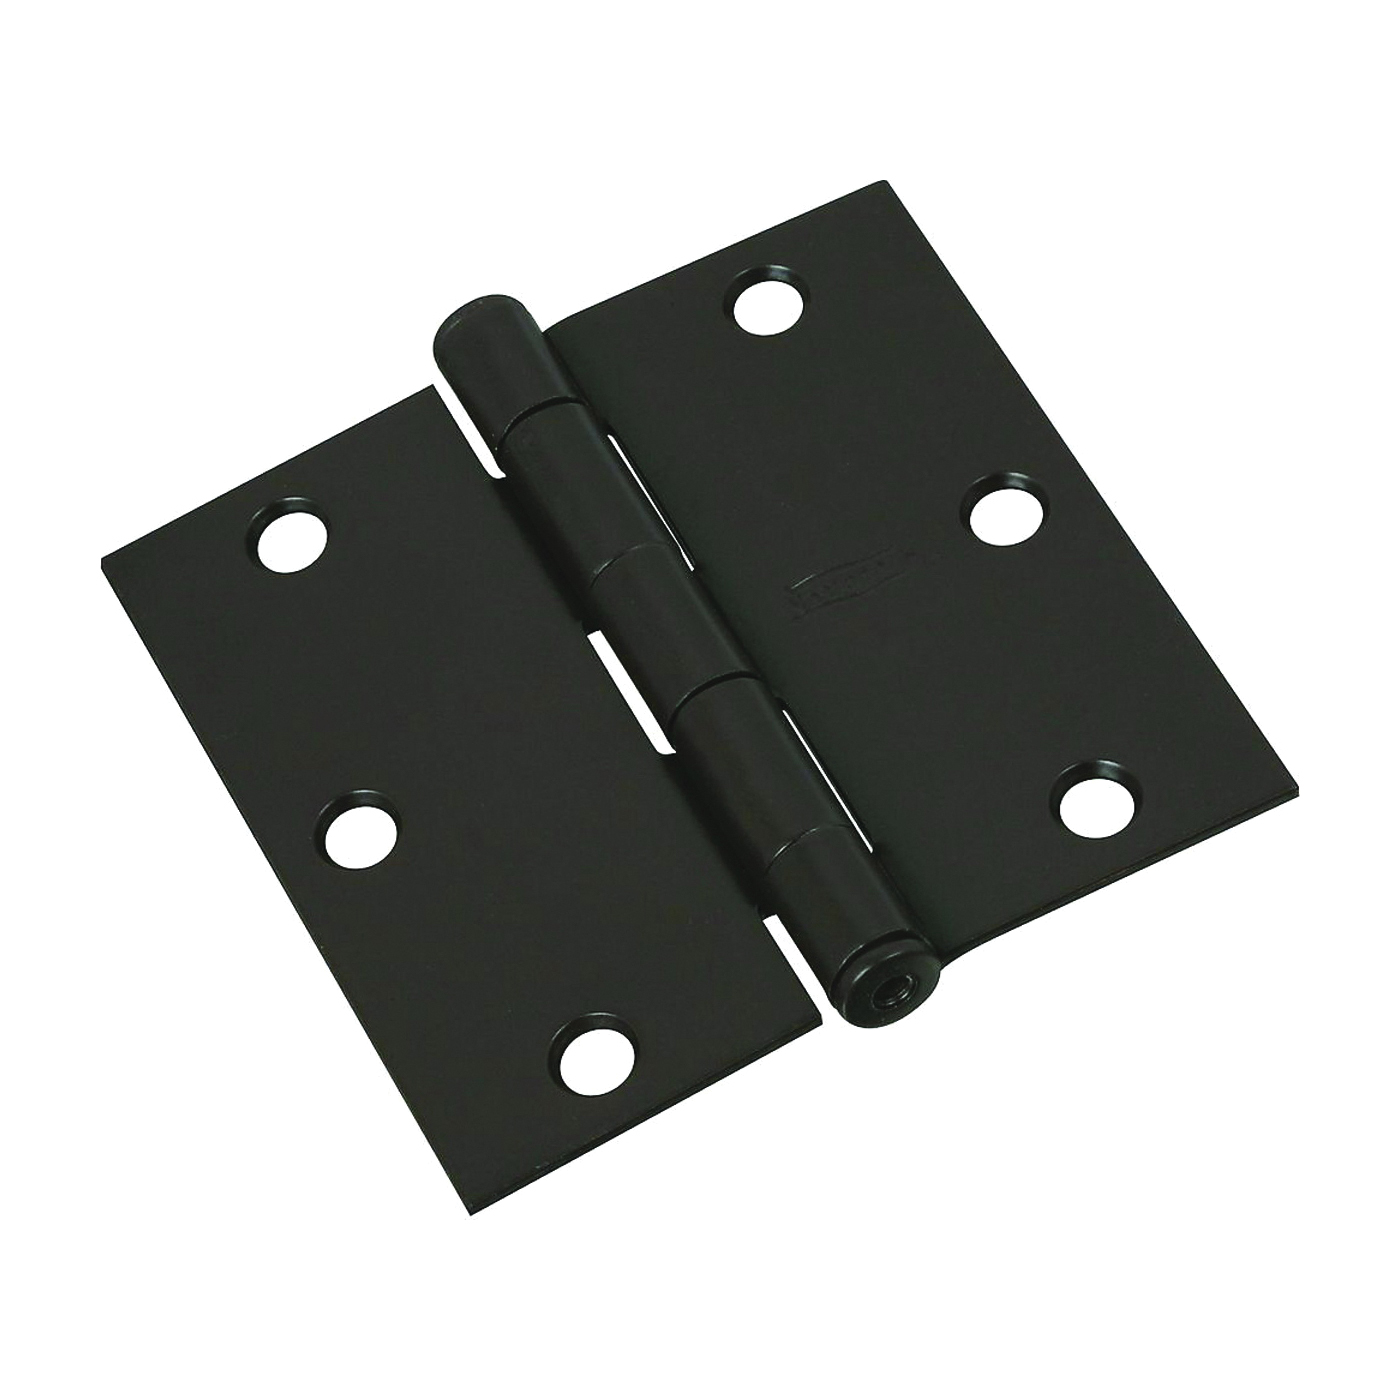 Picture of National Hardware N830-203 Door Hinge, Steel, Oil-Rubbed Bronze, Non-Rising, Removable Pin, Full-Mortise Mounting